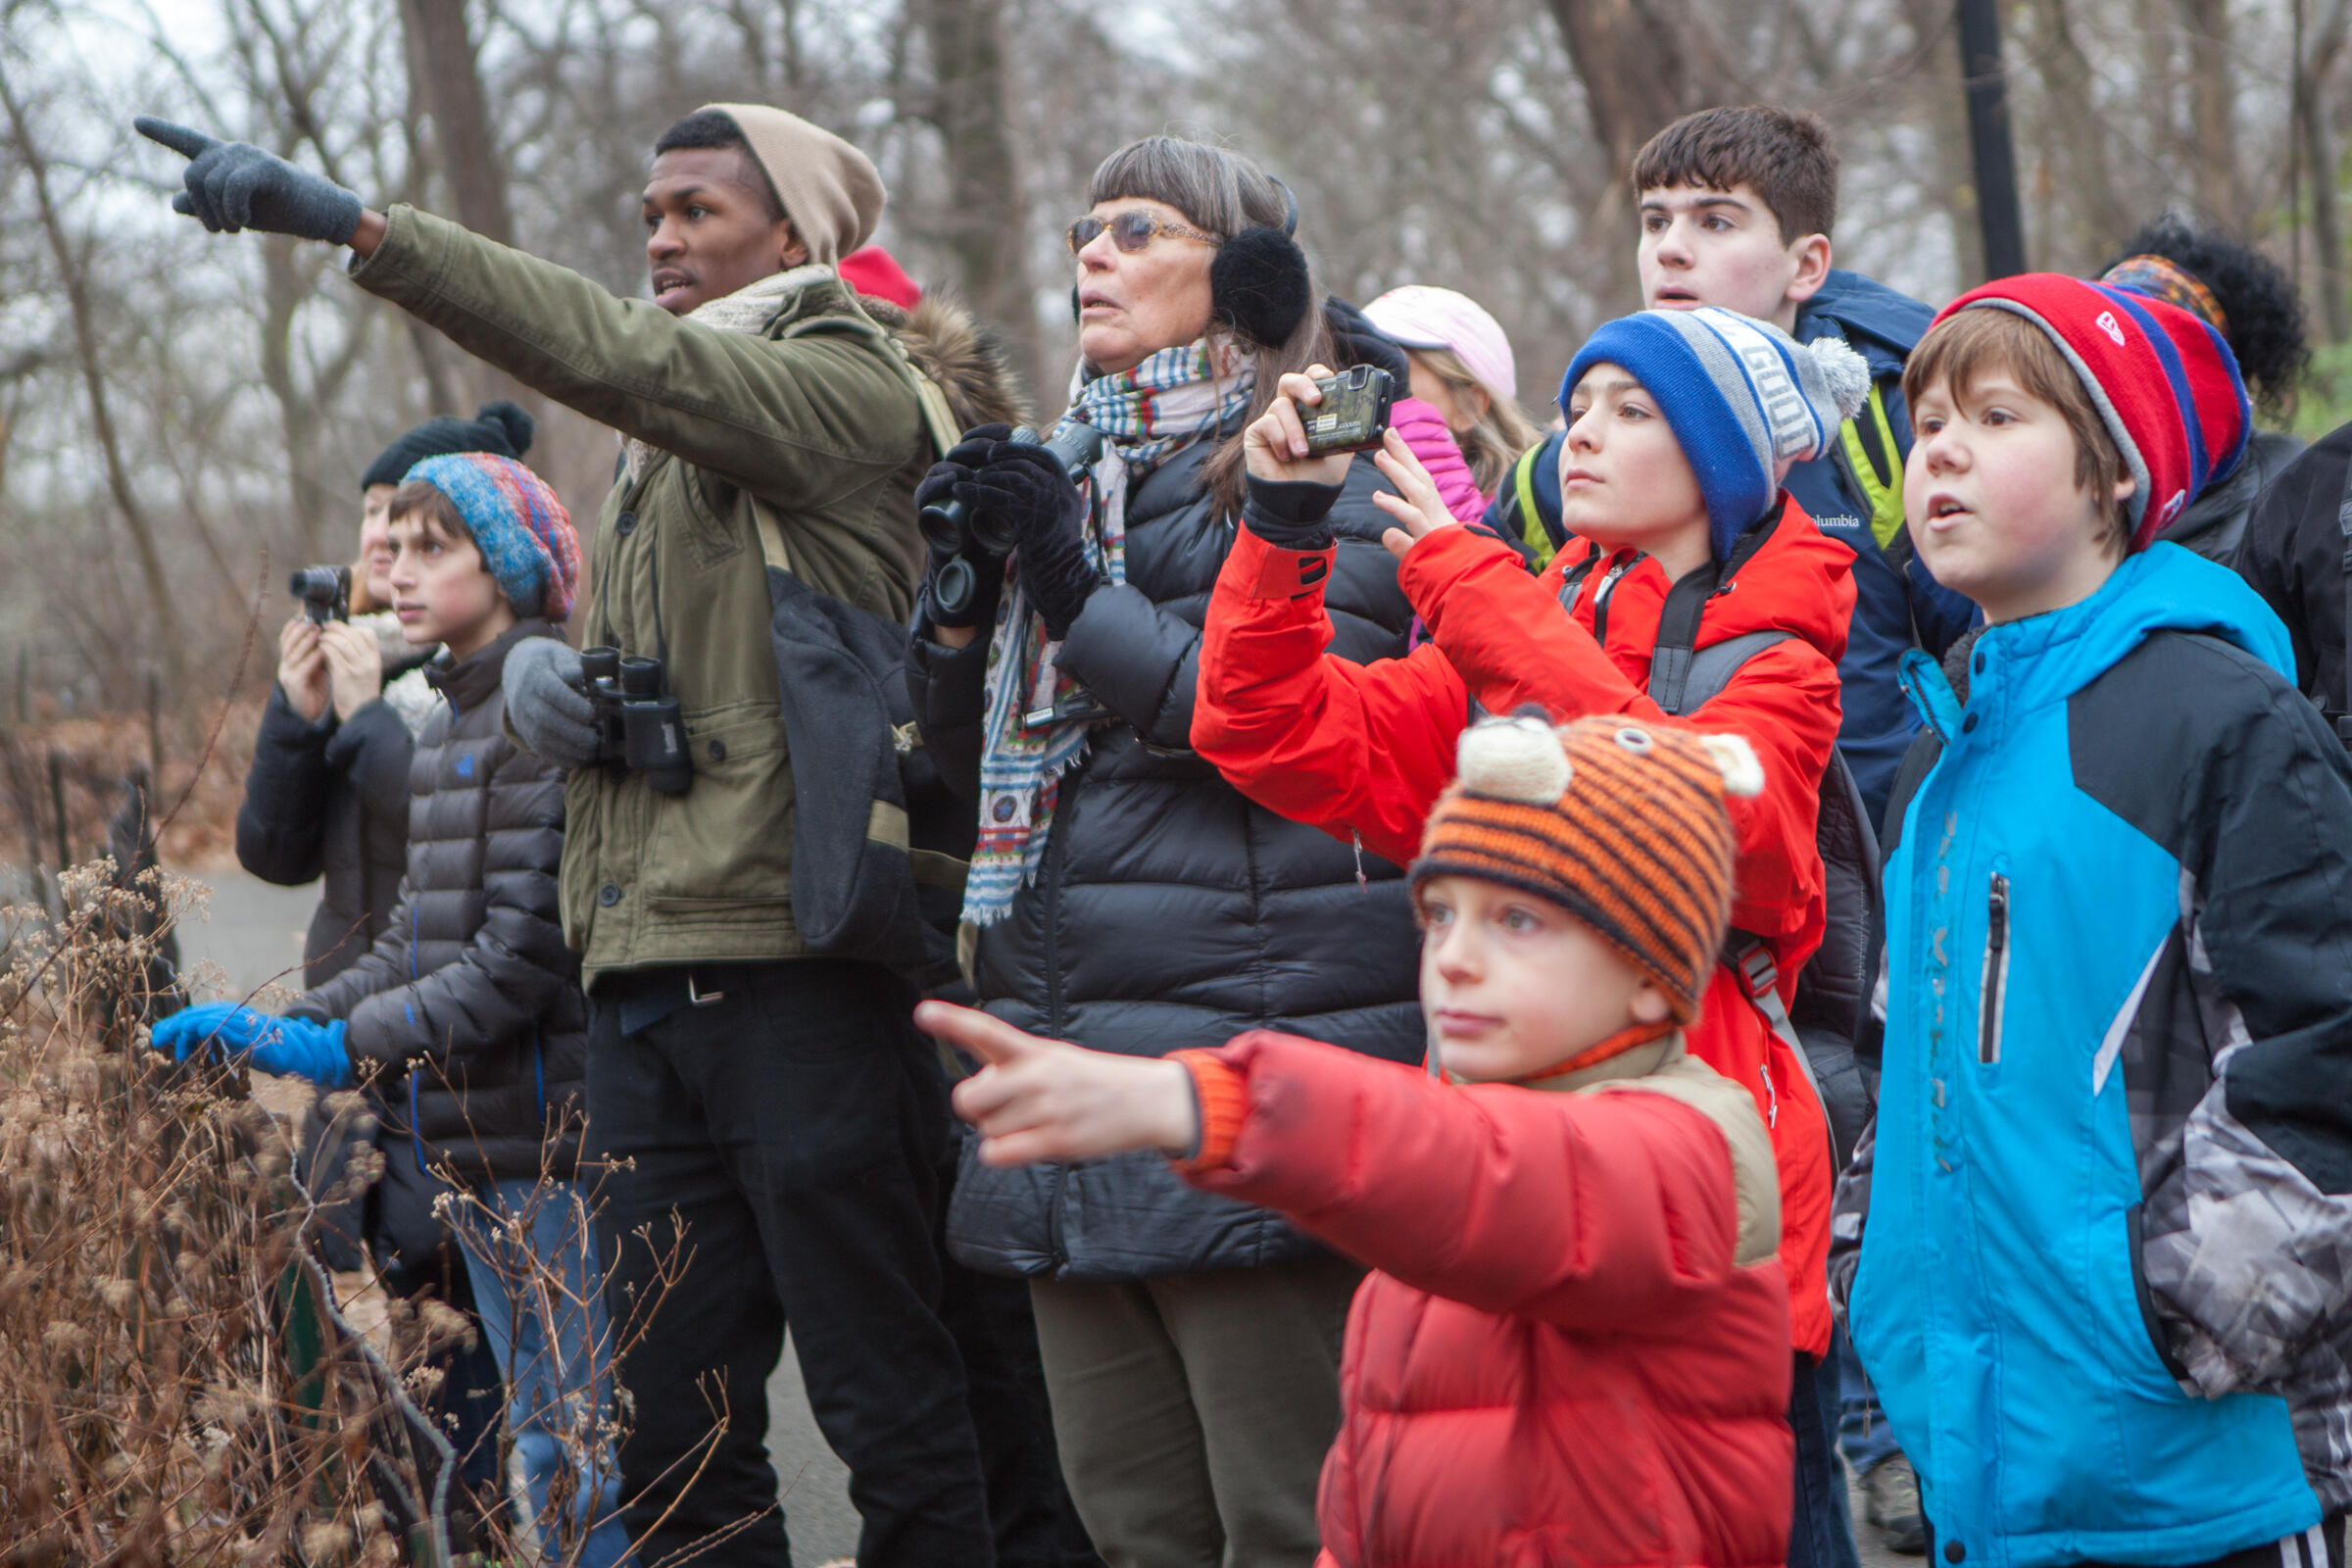 Christmas Bird Count, Camilla Cerea/National Audubon Society